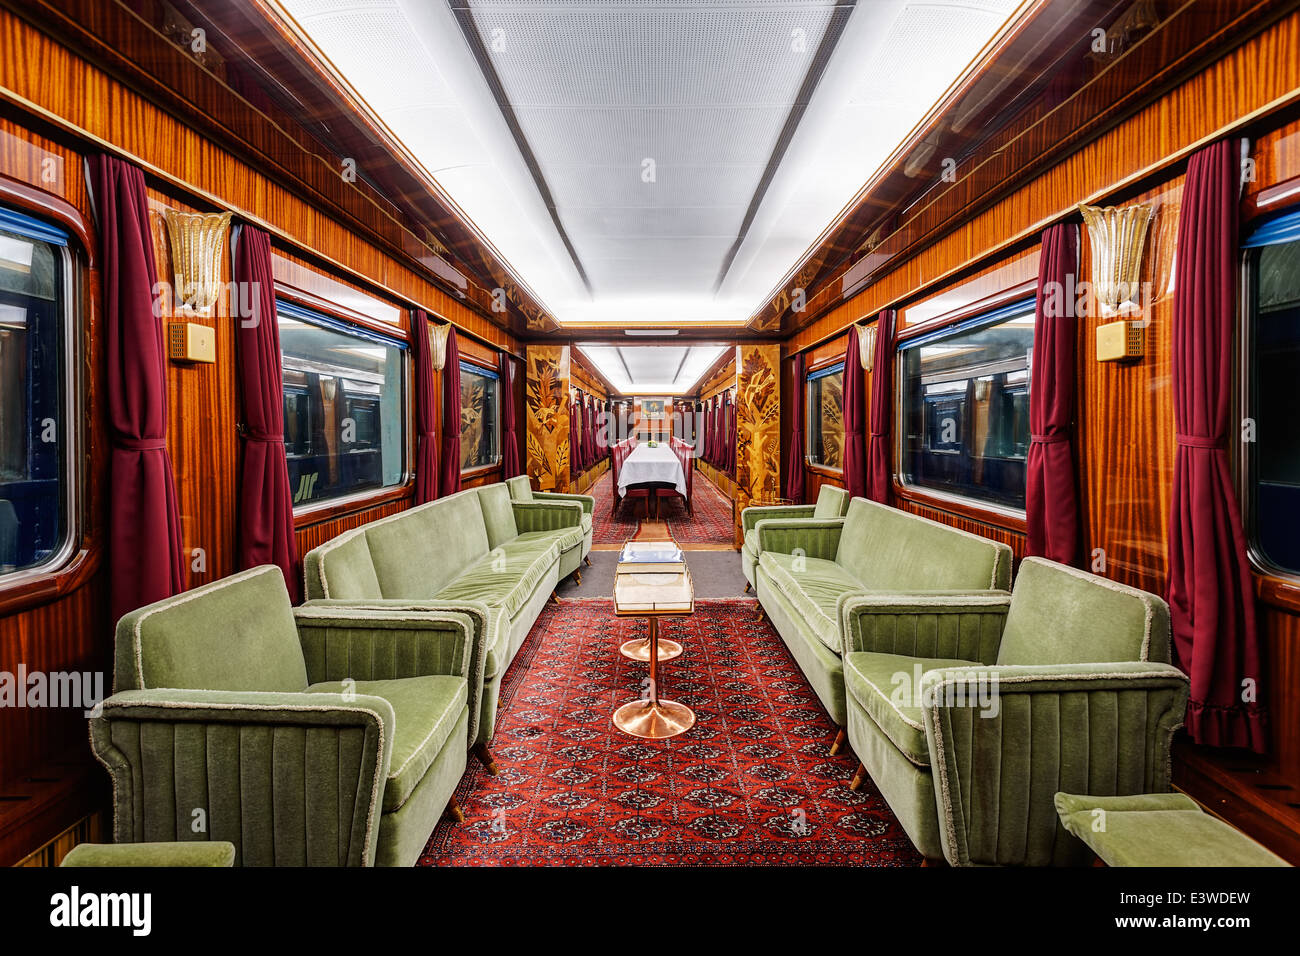 interior of luxury old train carriage stock photo royalty free image 71244849 alamy. Black Bedroom Furniture Sets. Home Design Ideas